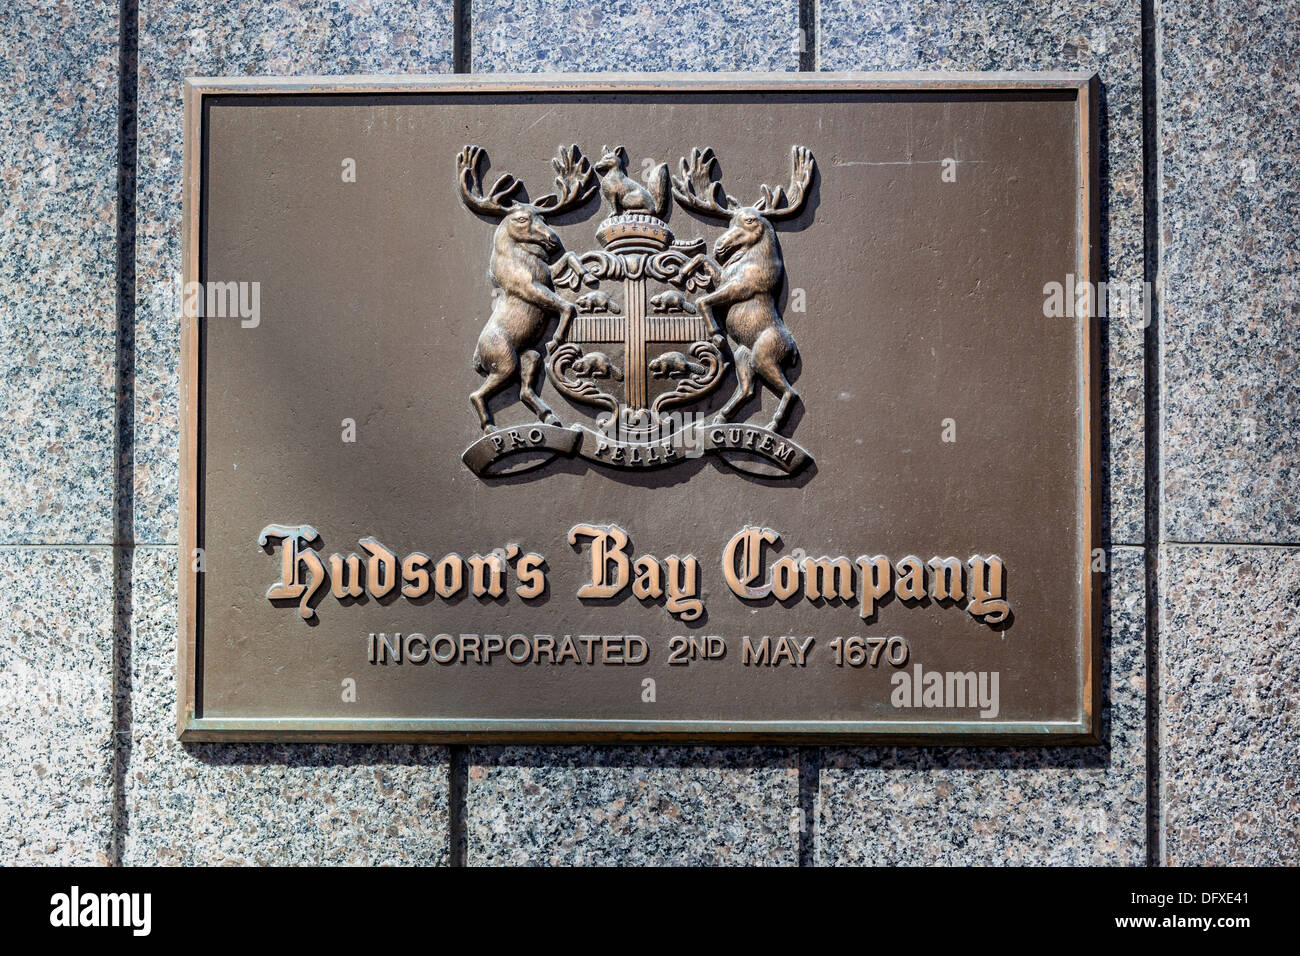 Hudson's Bay Company brass plate and Coat of Arms on Queen Street Building, Toronto - Stock Image